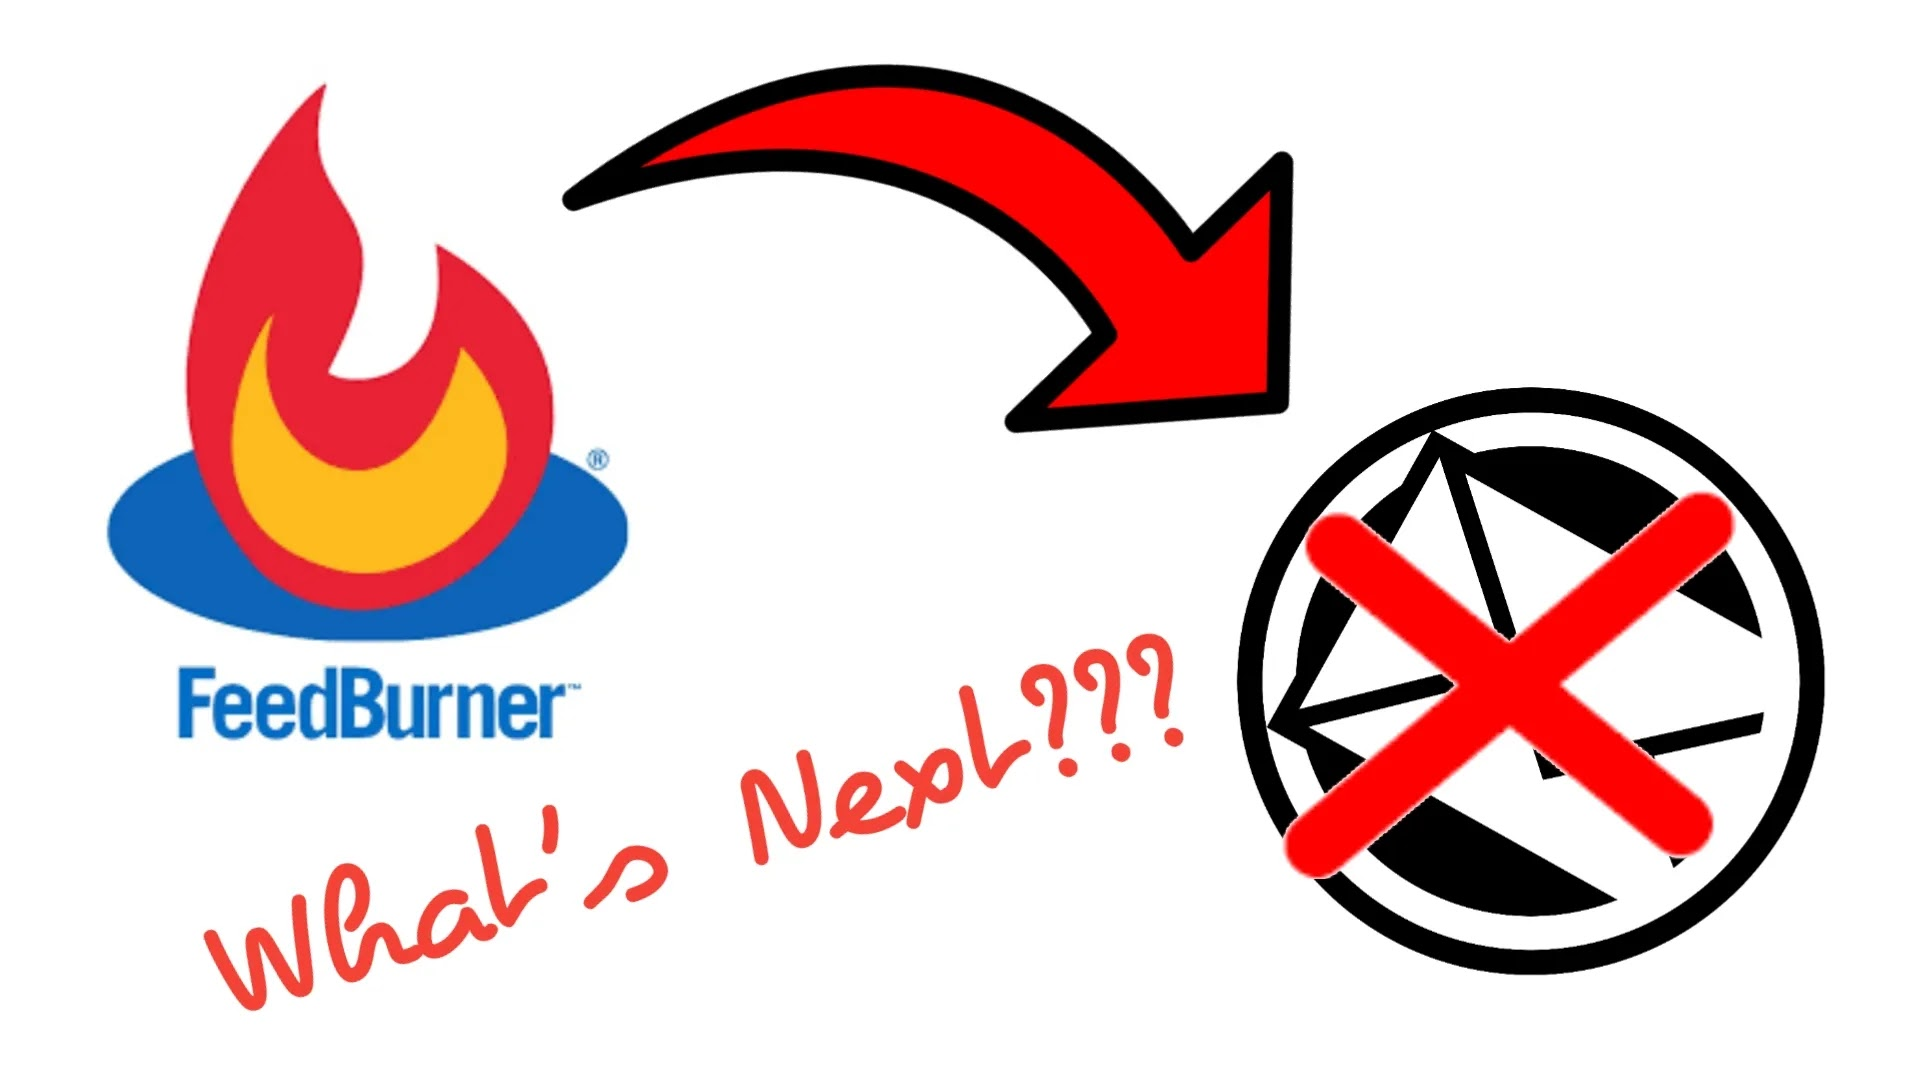 Google's Feed Burner To Lose Email Subscription Service